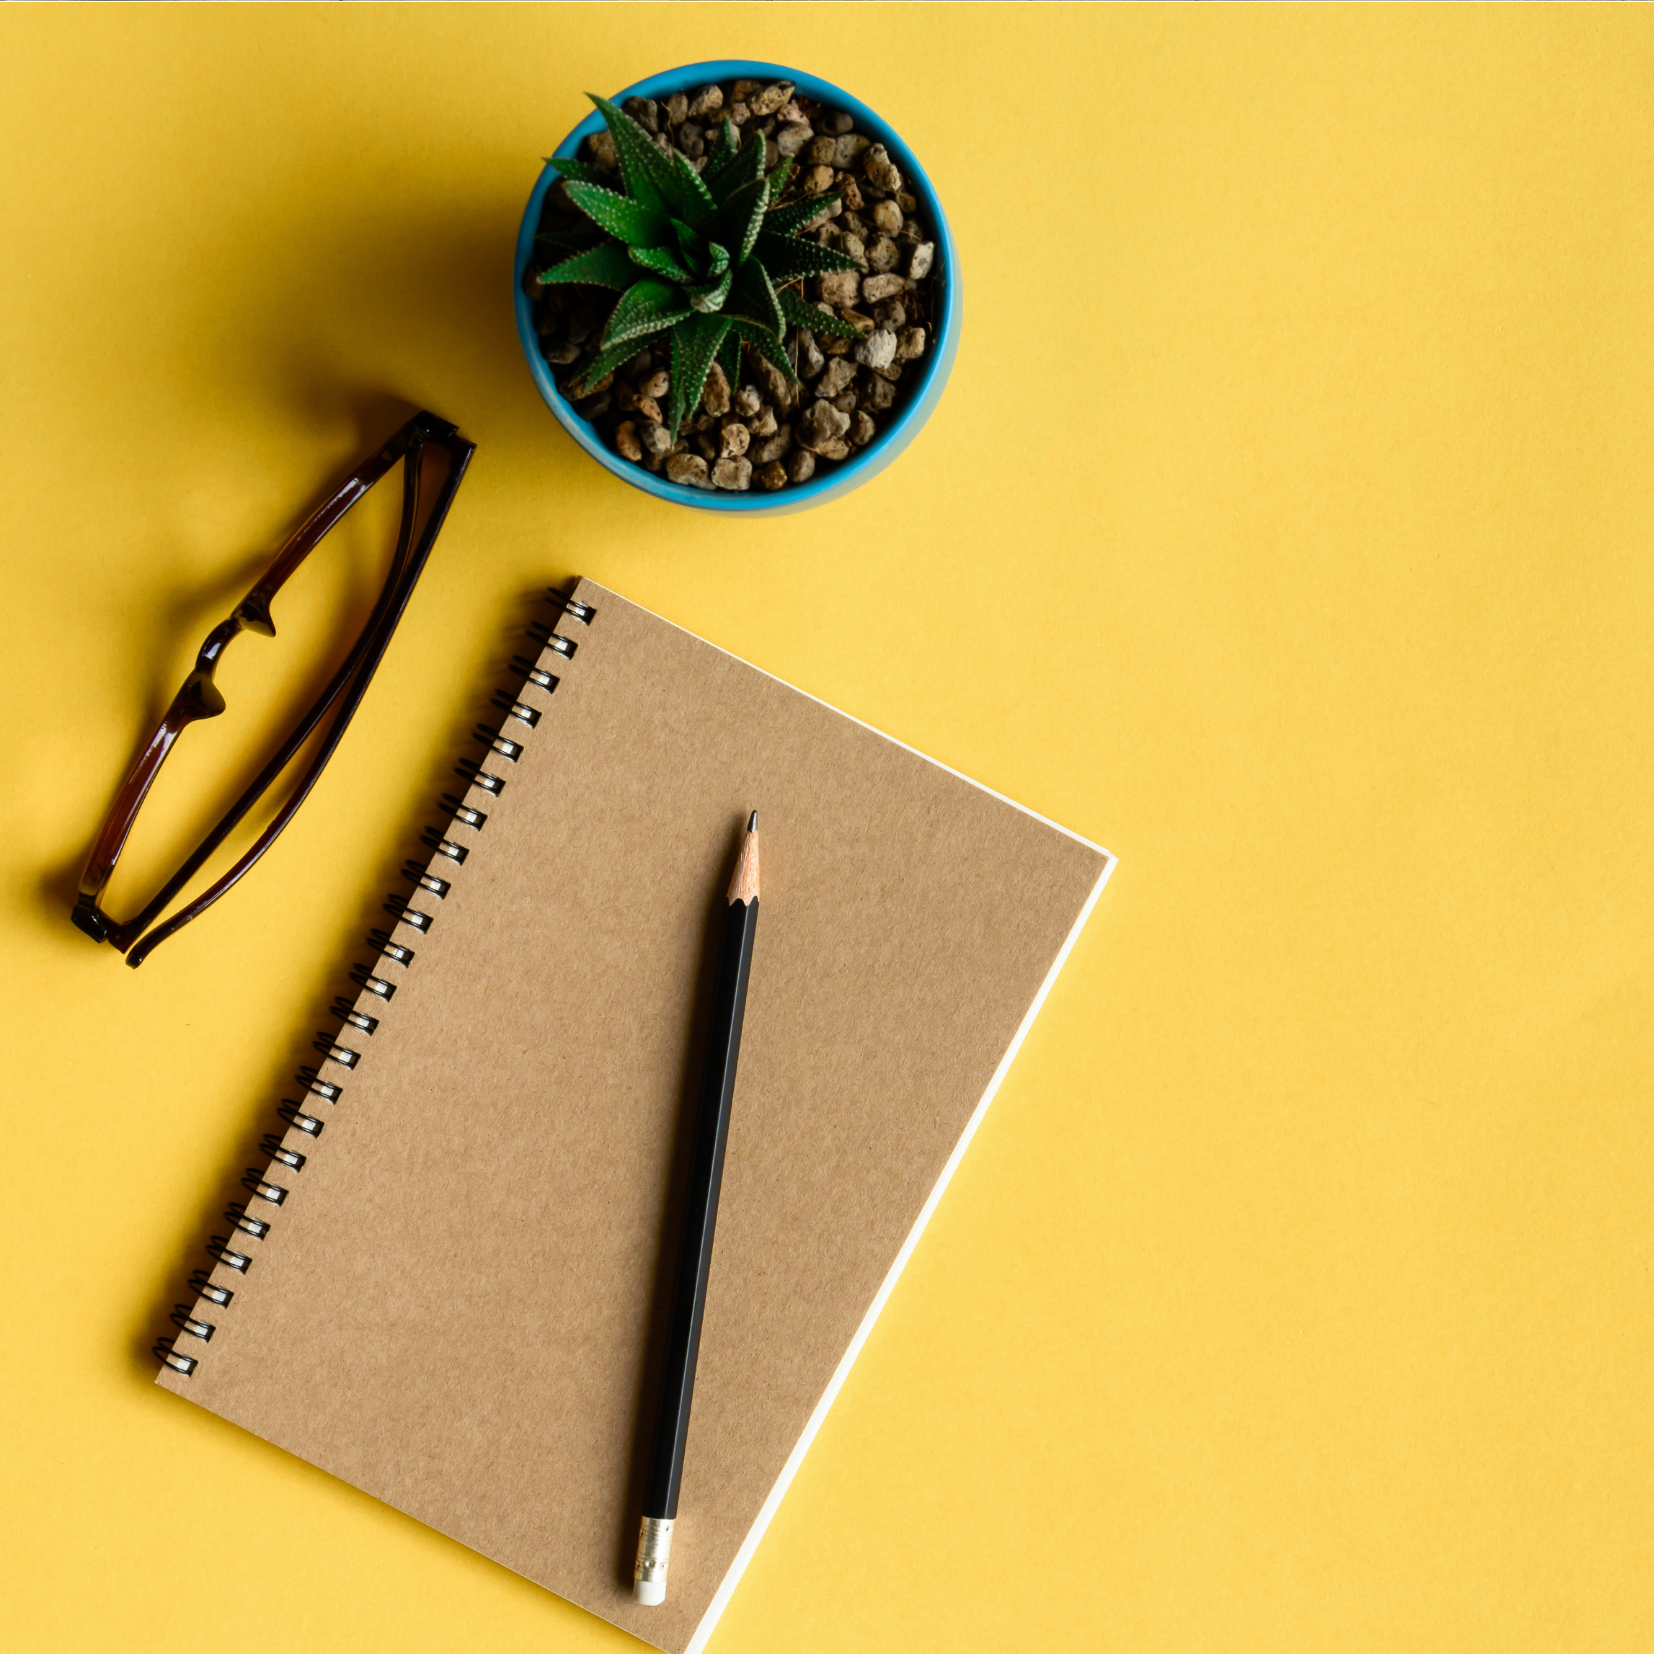 Yellow background with notebook, glasses & plant depicting Supervision